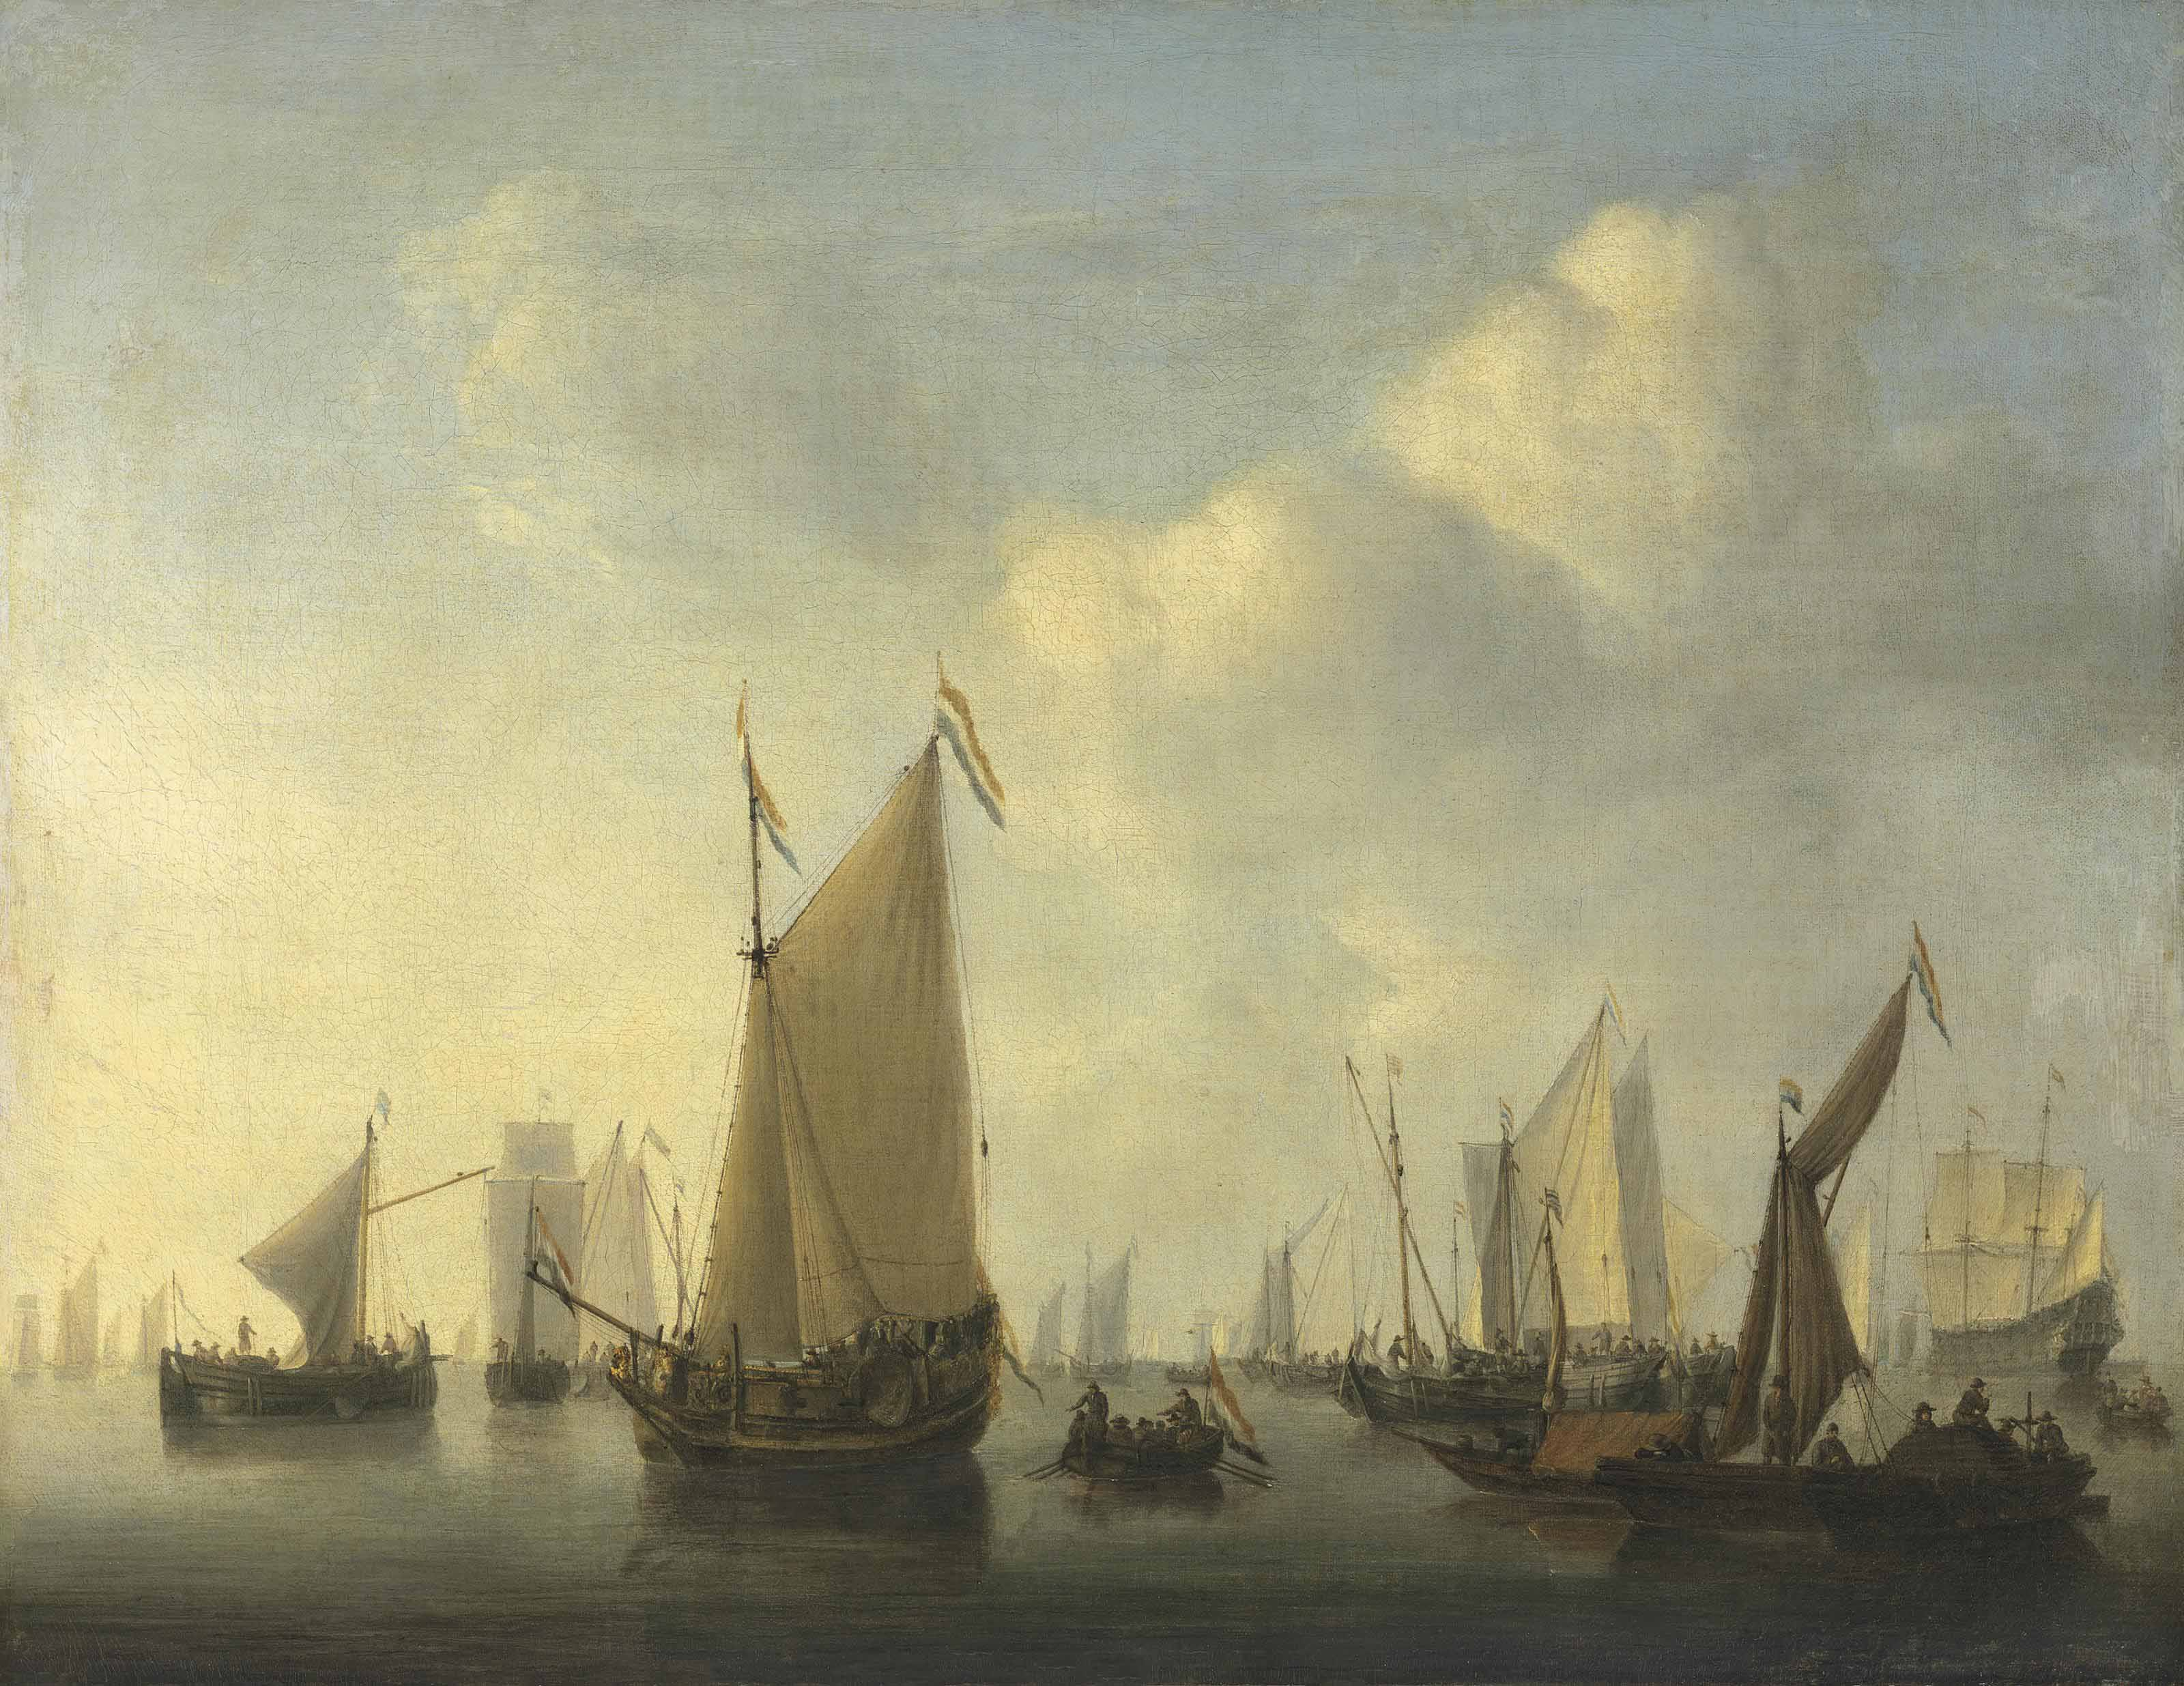 A States yacht under sail, a pont with sprit-sail hauled up and other ships in a calm